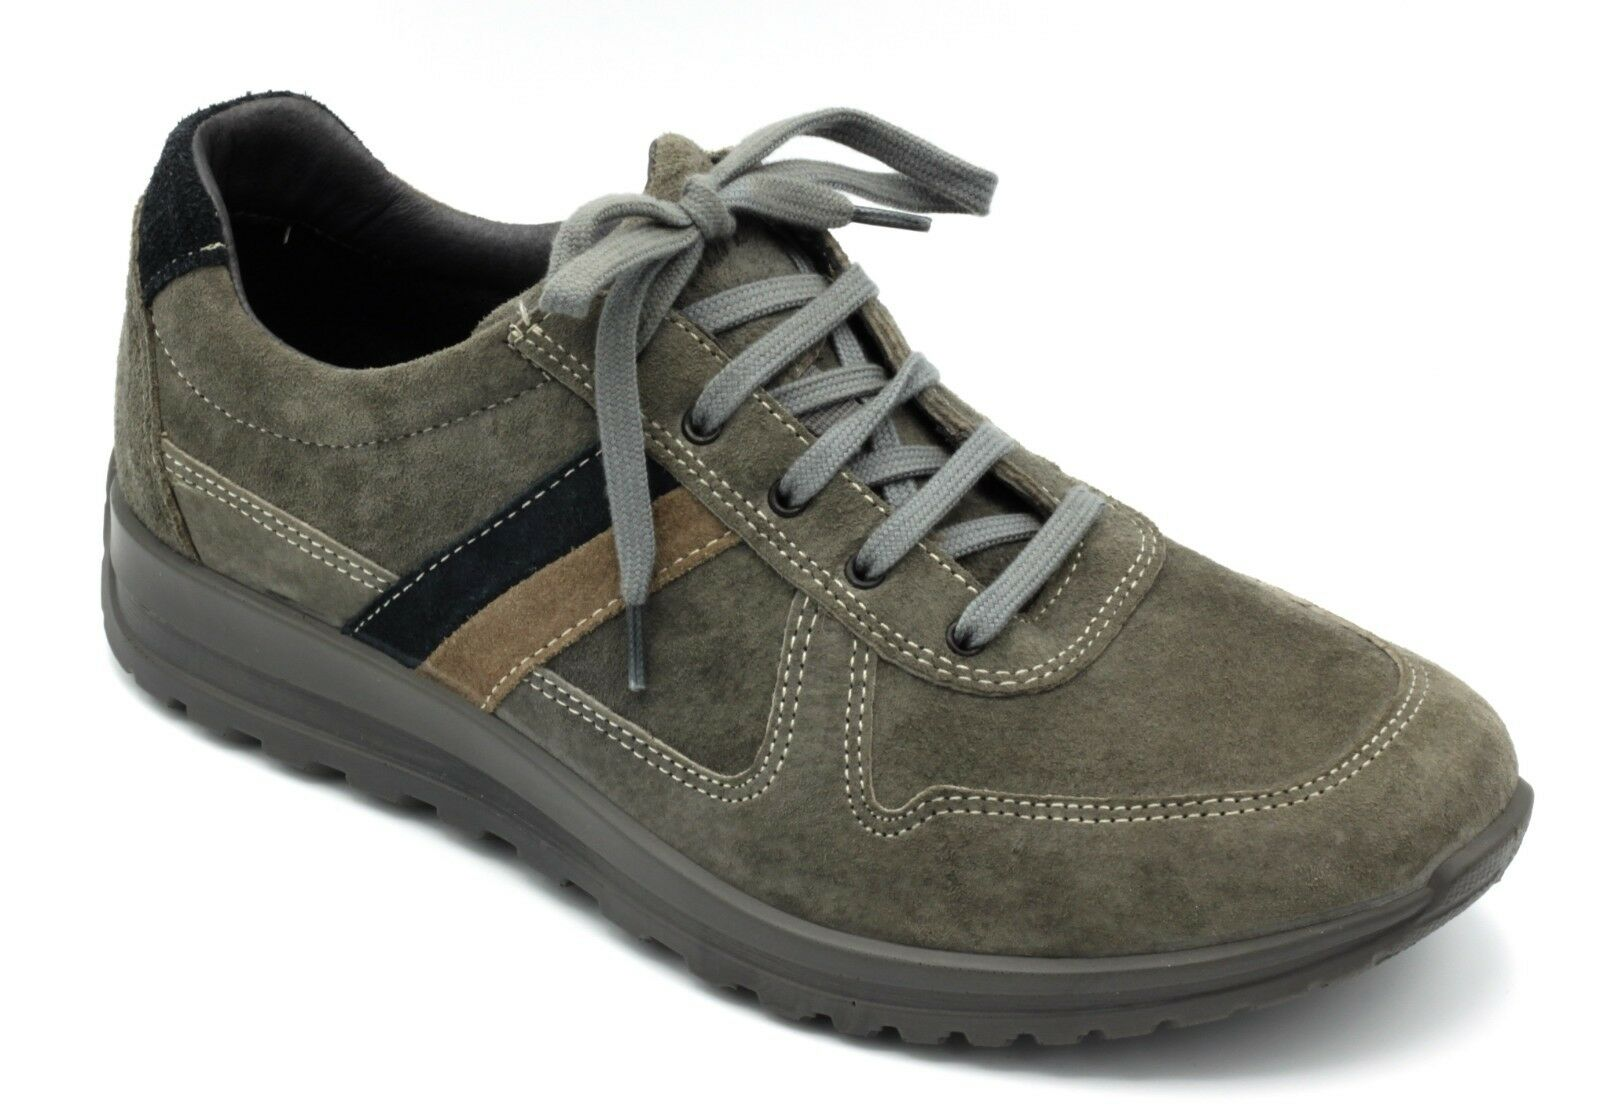 GRI SPORT shoes men CASUAL TEMPO LIBERO ALLACCIATE NABUK color grey   43